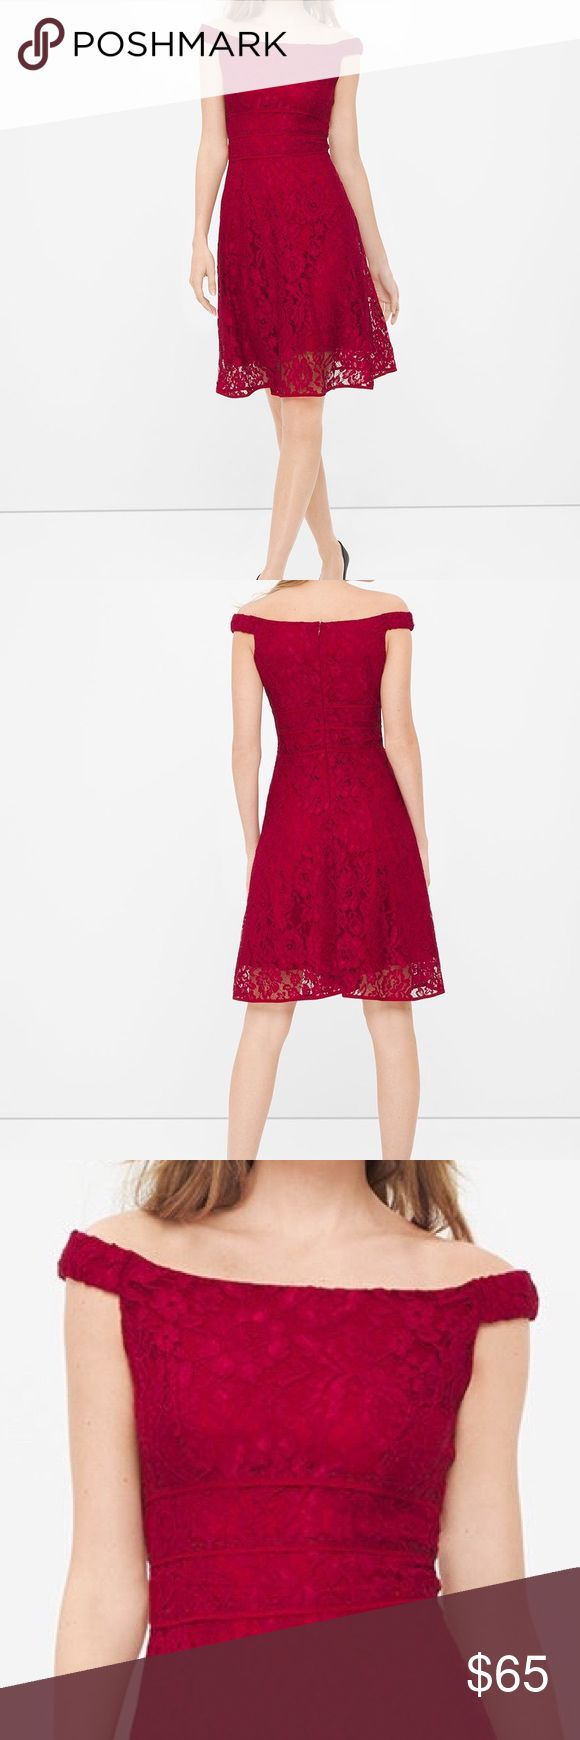 """OFF-THE-SHOULDER LACE FIT-AND-FLARE DRESS Never worn....Red off-the-shoulder lace fit-and-flare dress with elasticized shoulder straps and lined. Triple waist-defining details. Invisible back zip with hook-and-eye closure. Approx. 39"""" from shoulder; hits at the knee. Nylon/rayon/polyester/spandex. Machine wash cold. White House Black Market Dresses"""